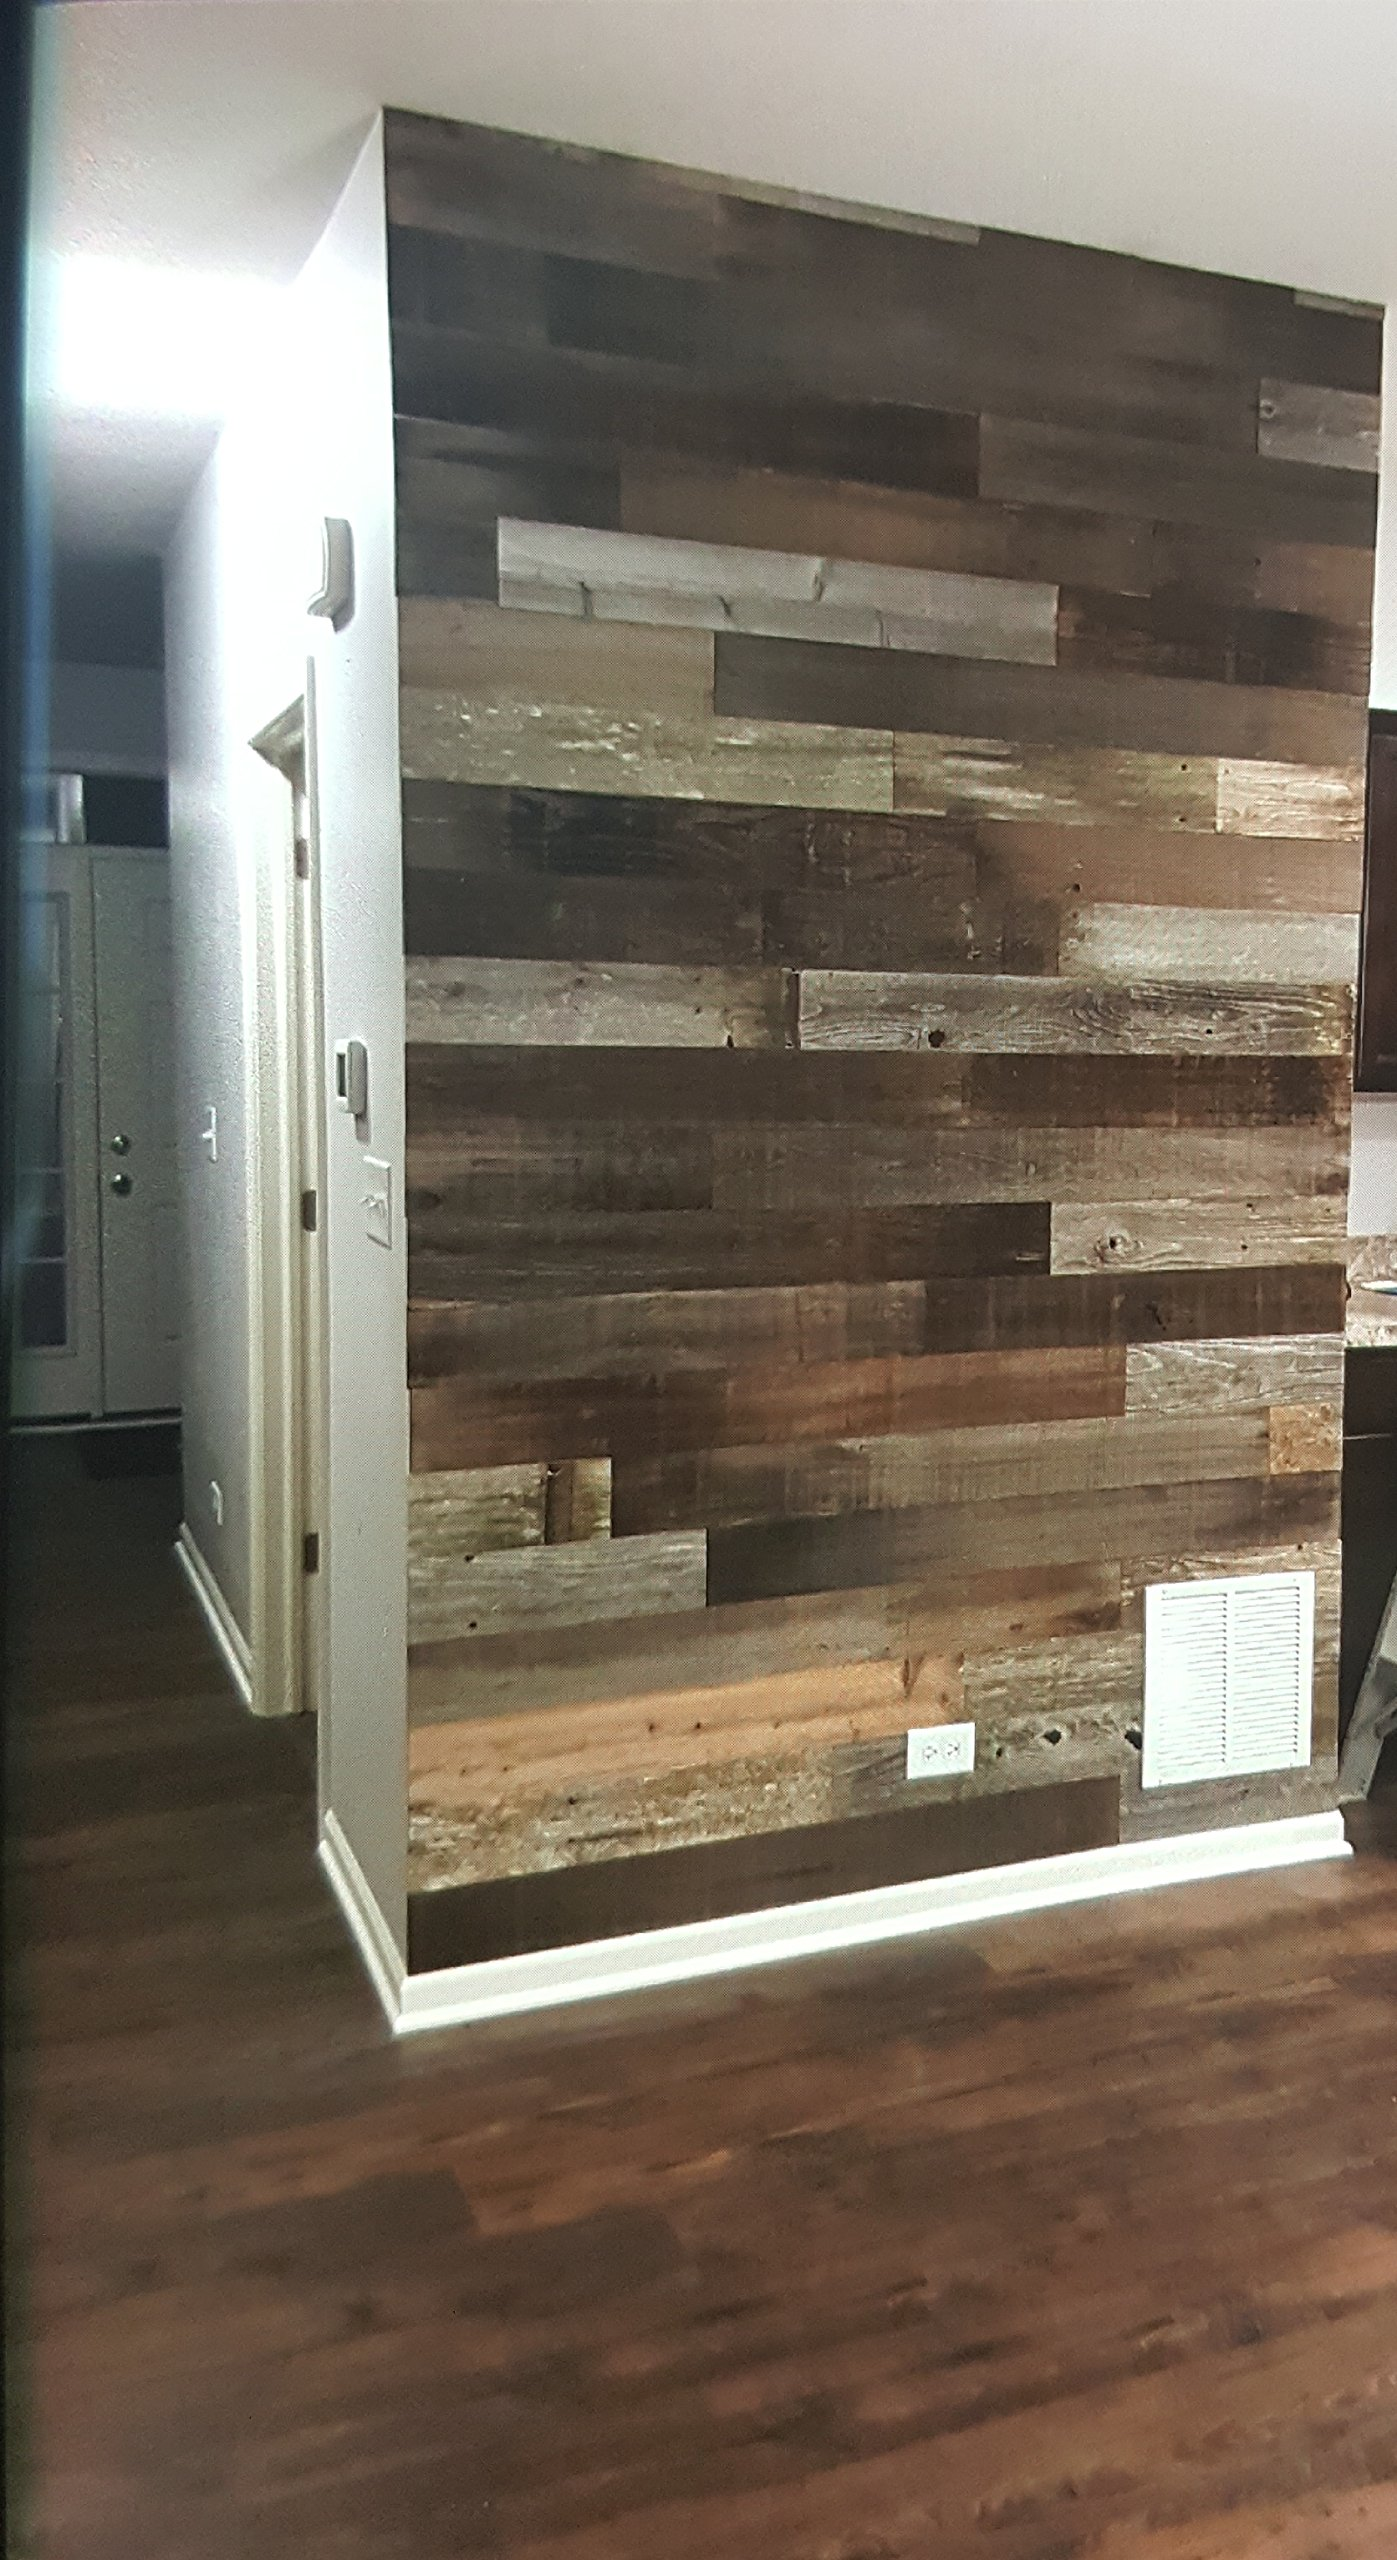 Peel and Stick Wood Wall Planks, 100% Real Rustic Wall Paneling for Accent Walls - Easy DIY Installation